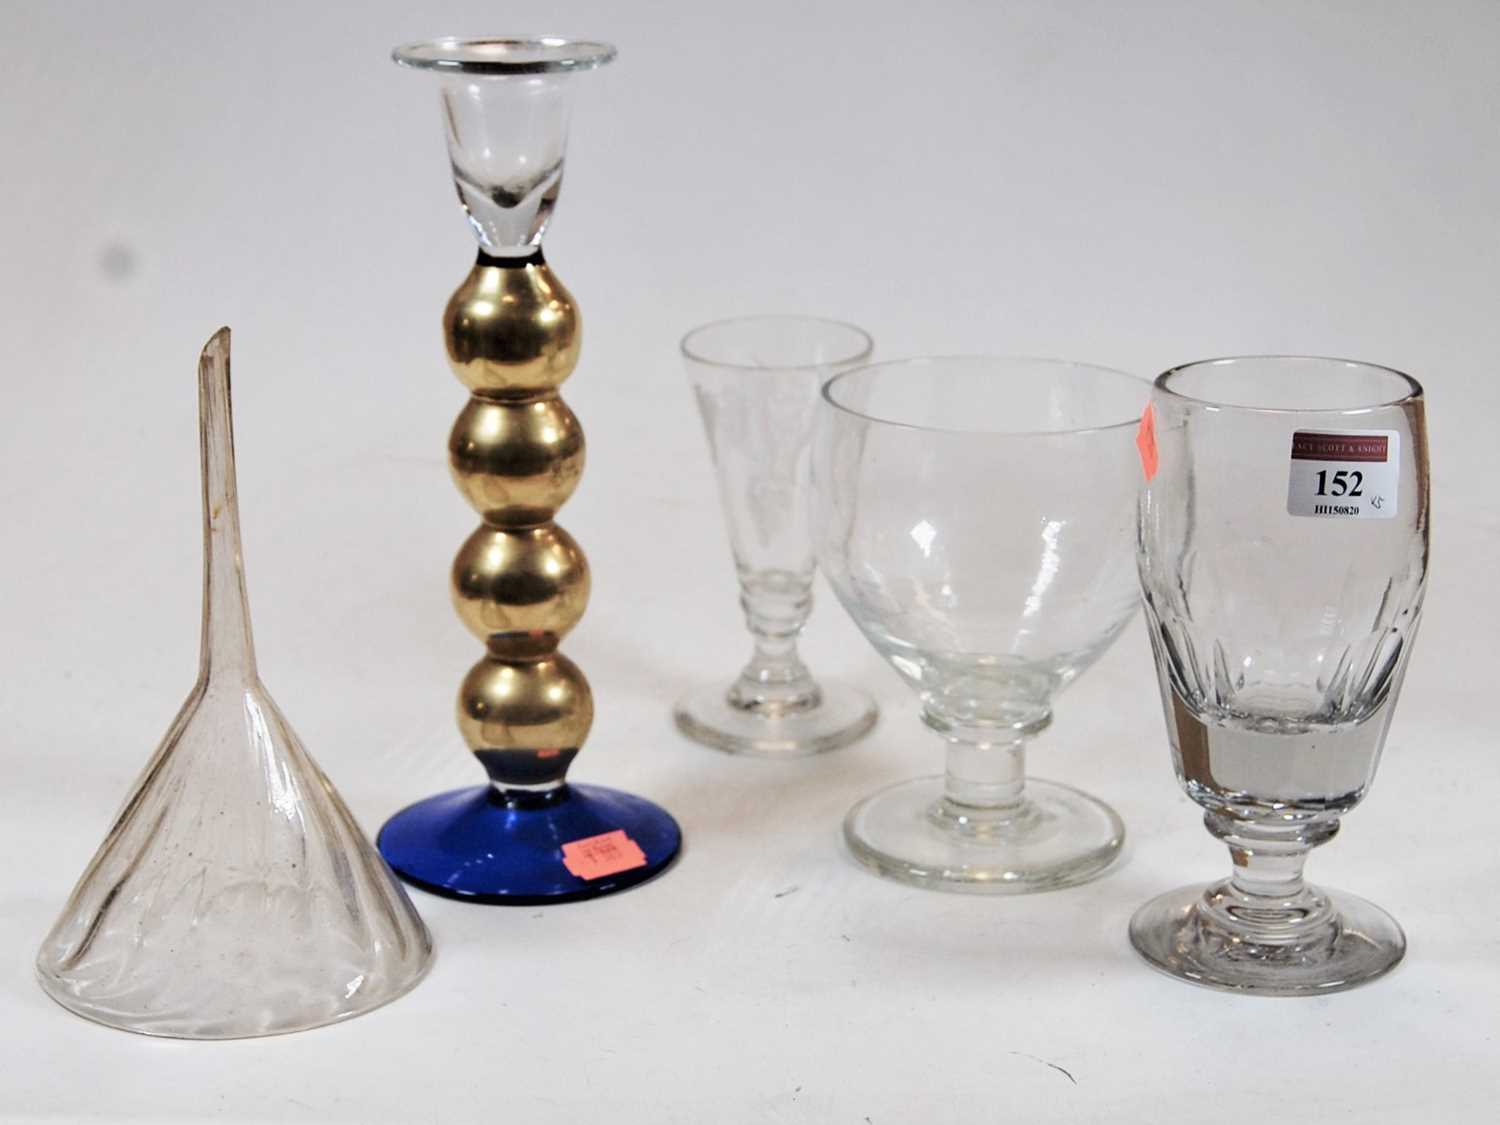 Lot 152 - A 19th century cut glass rummer; together with two other glasses, a glass funnel, and a